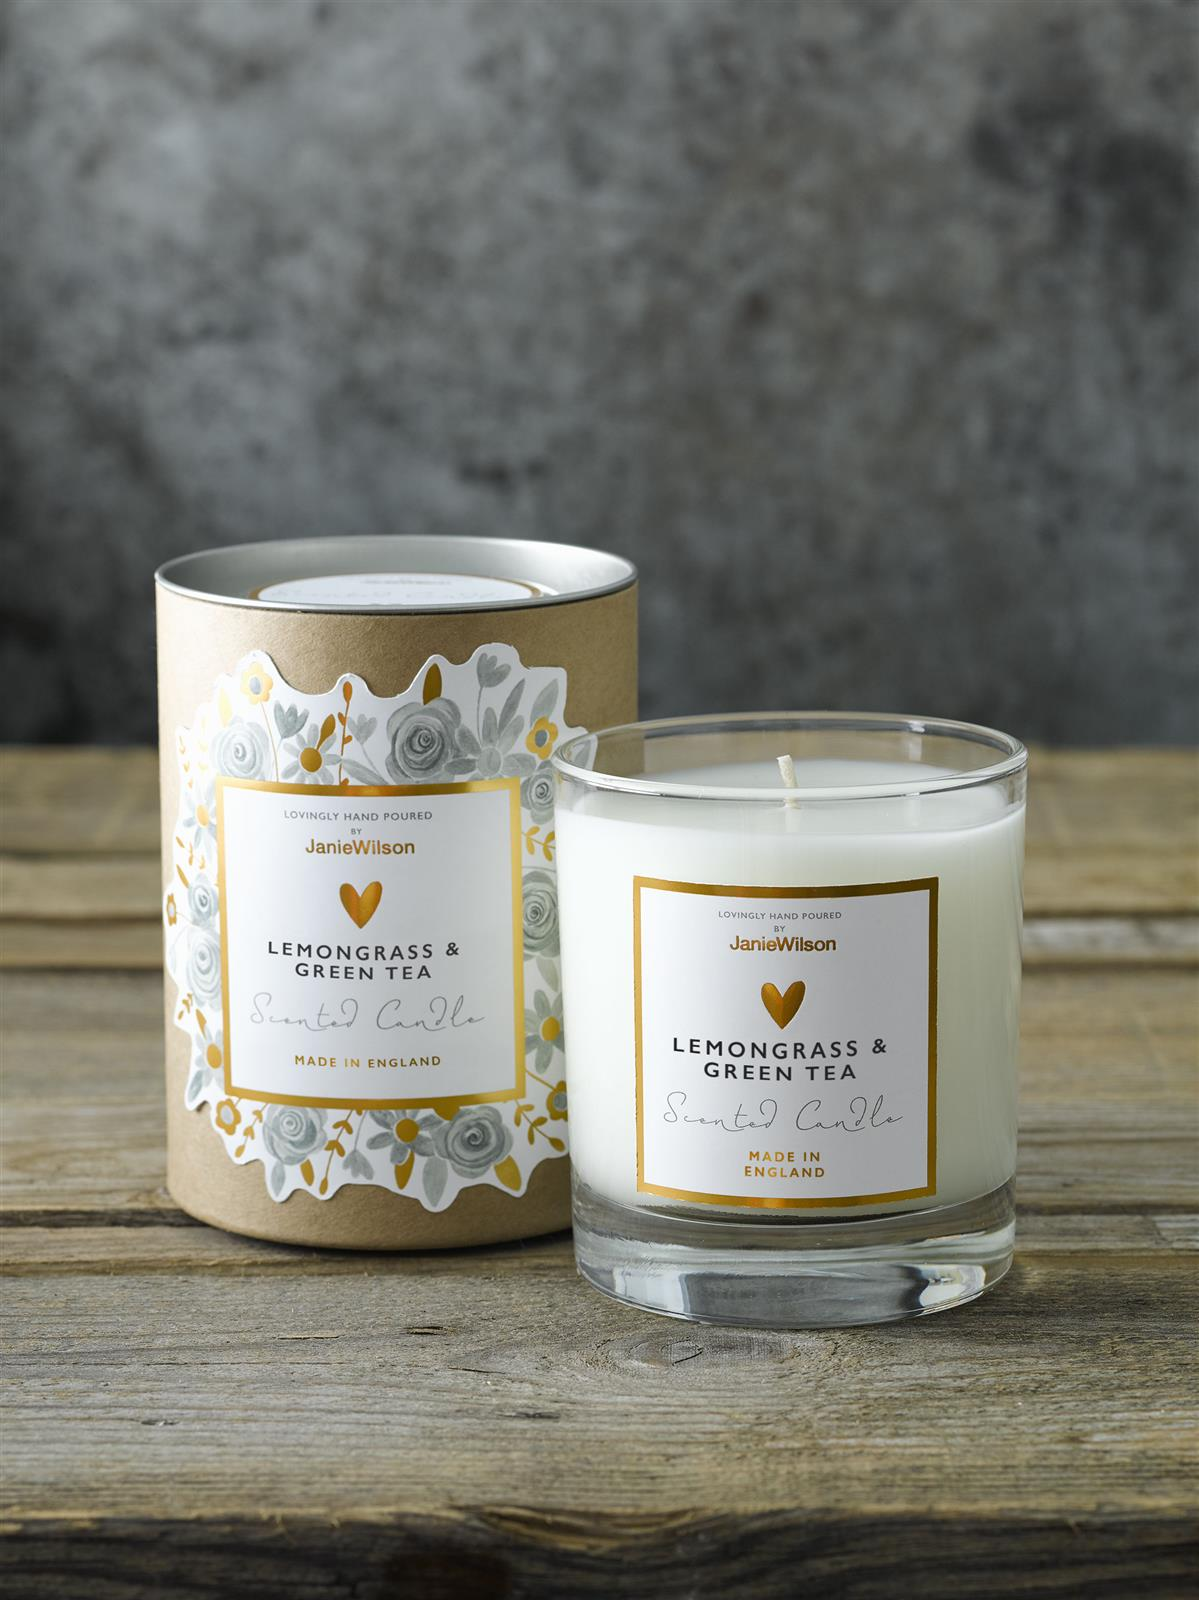 Lemongrass & Green Tea Candle